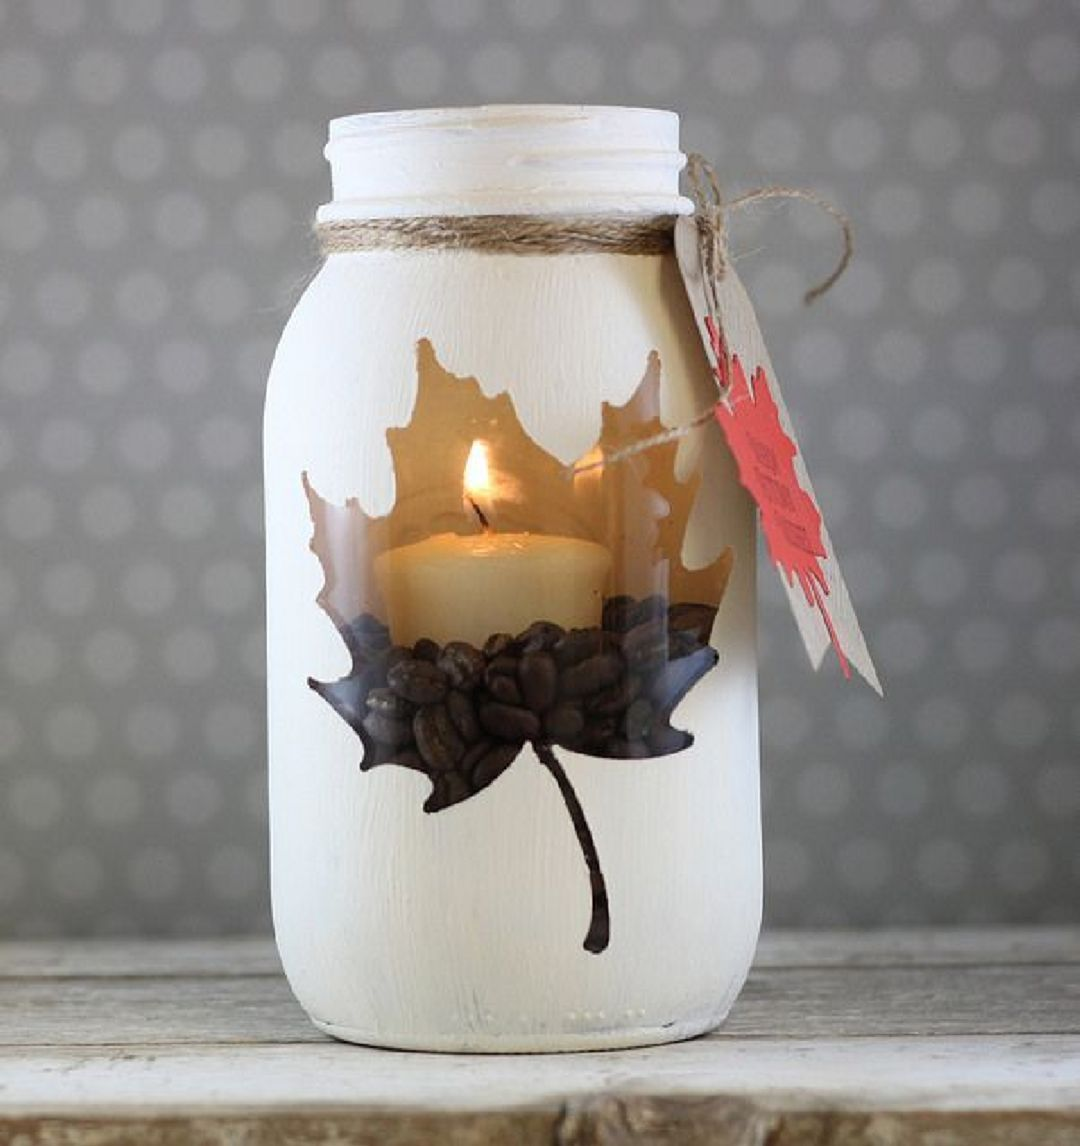 15 Awesome Diy Mason Jar Lights To Make Your Home Look Beautiful 15 Awesome DIY Mason Jar Lights to Make Your Home Look Beautiful Diy Fall Crafts diy fall crafts